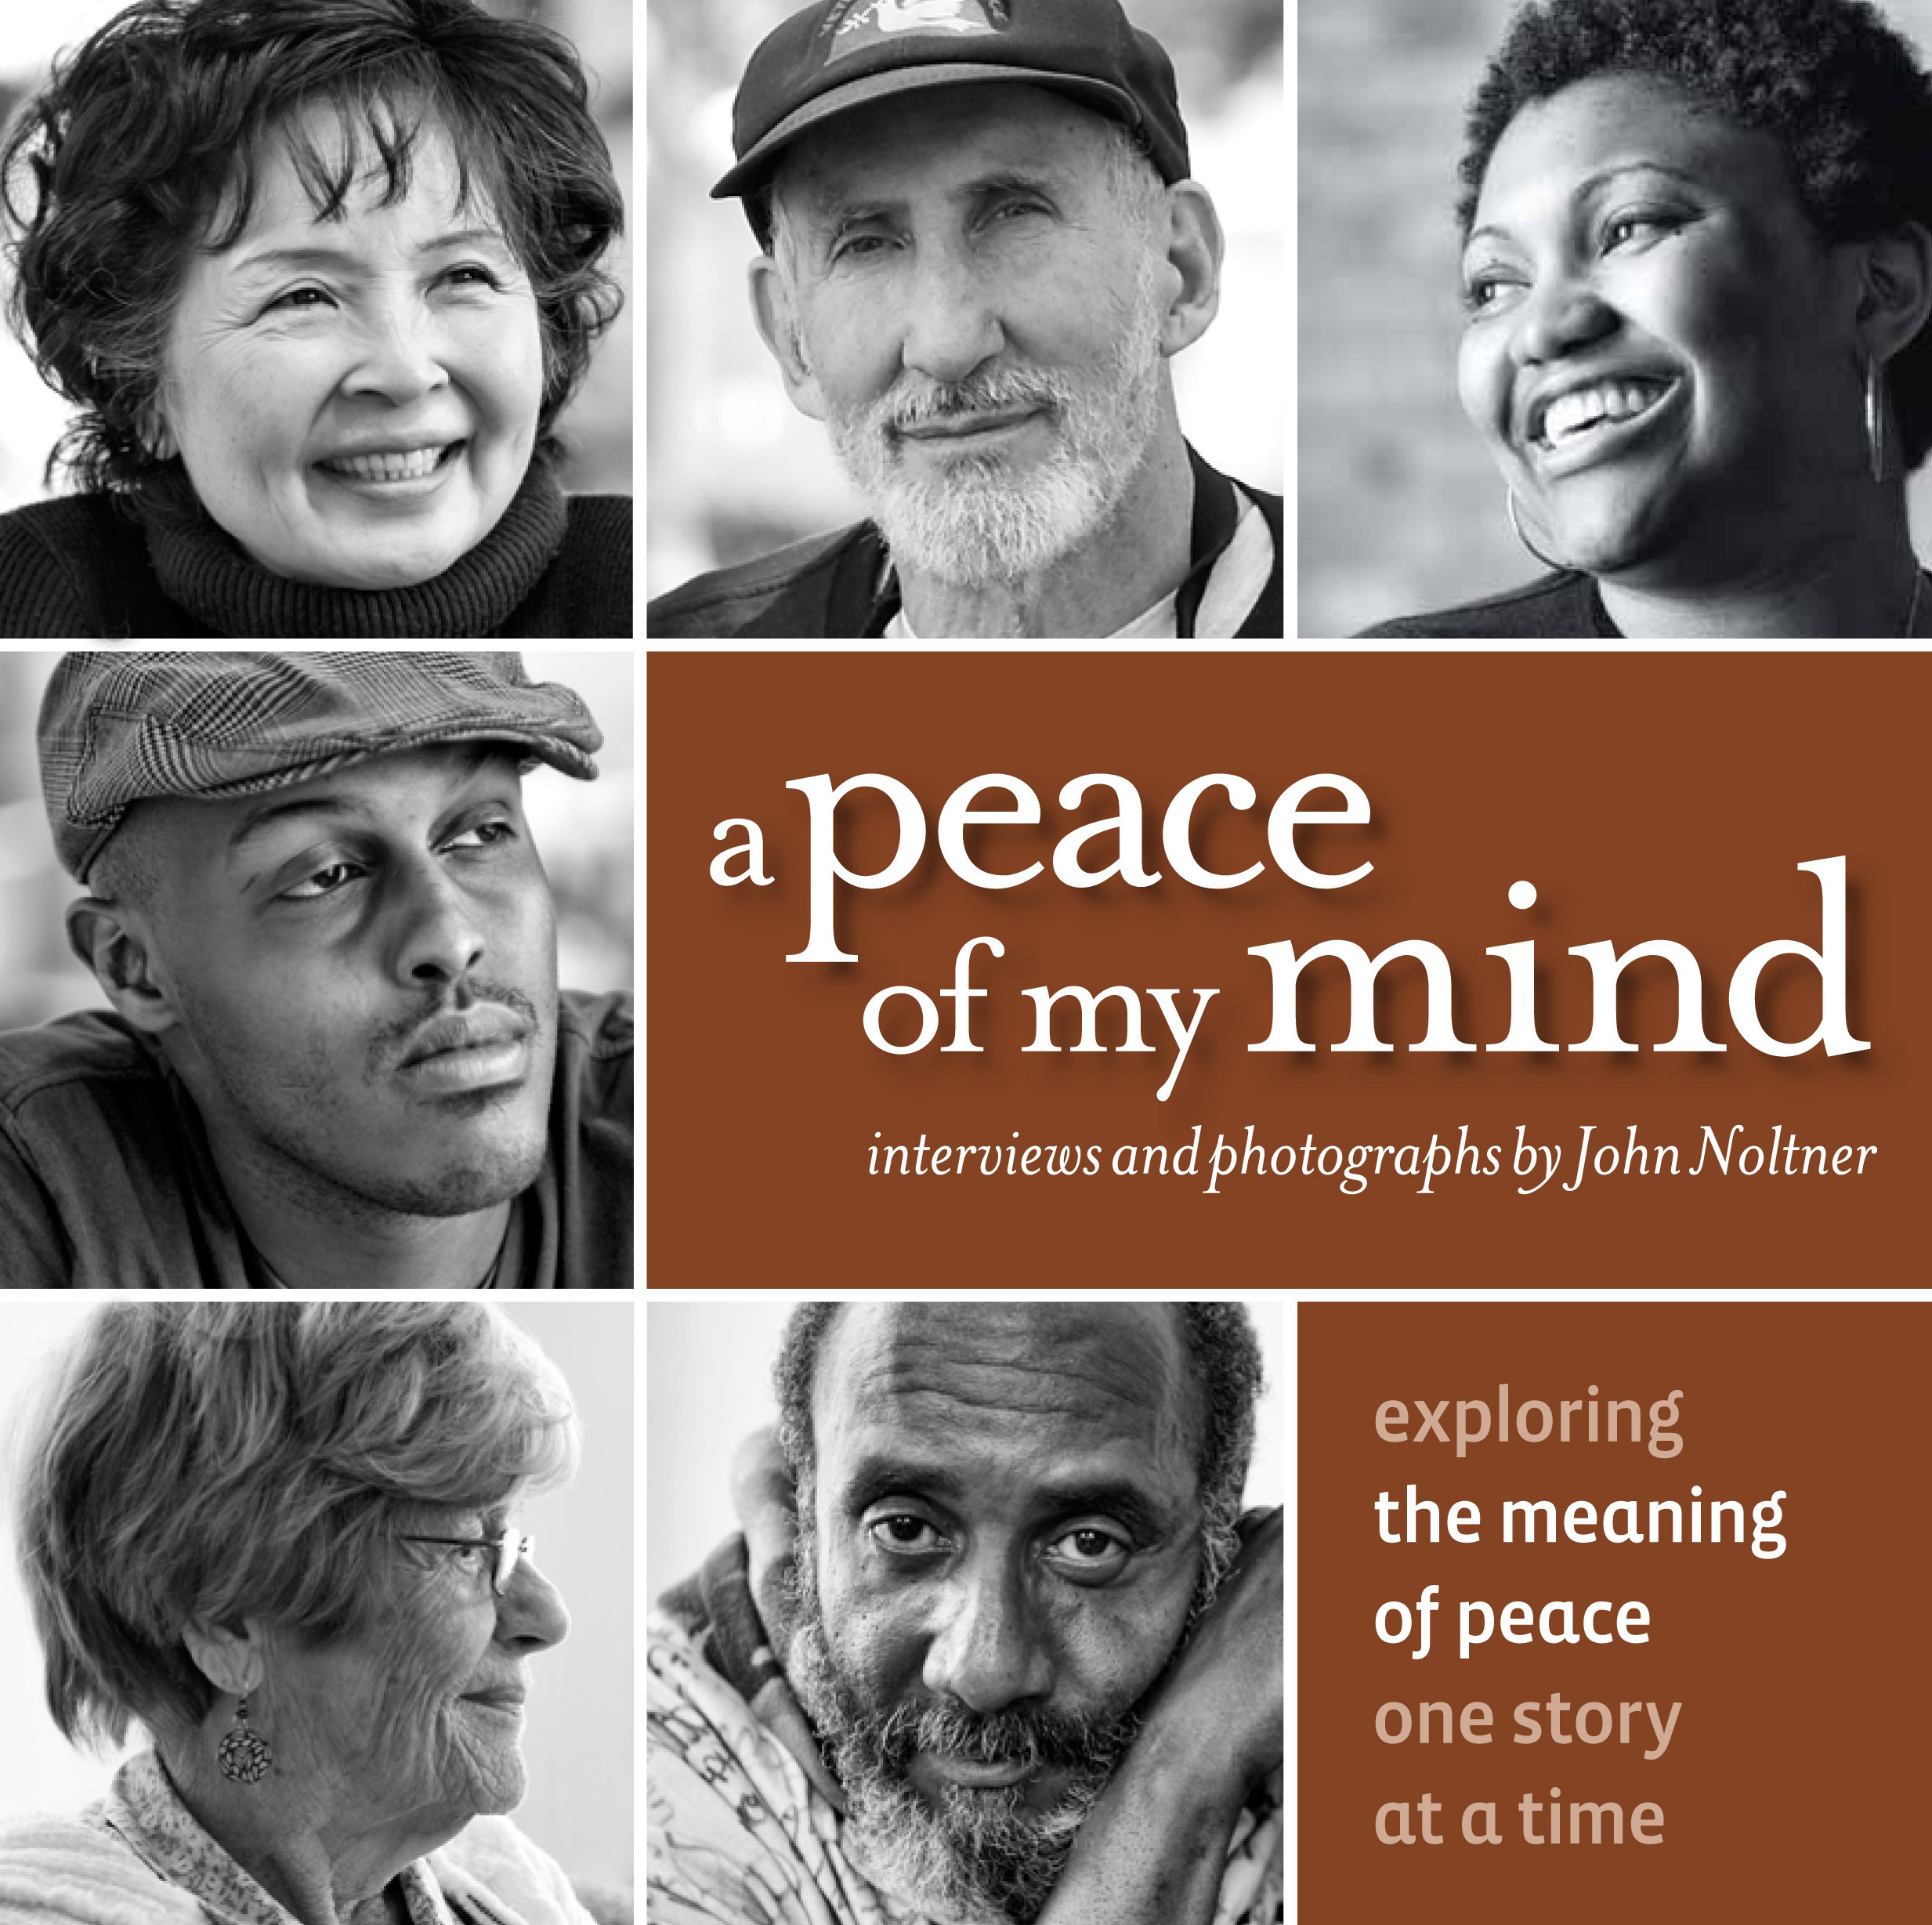 A Peace of My Mind:  Exploring the meaning of peace, one story at a time